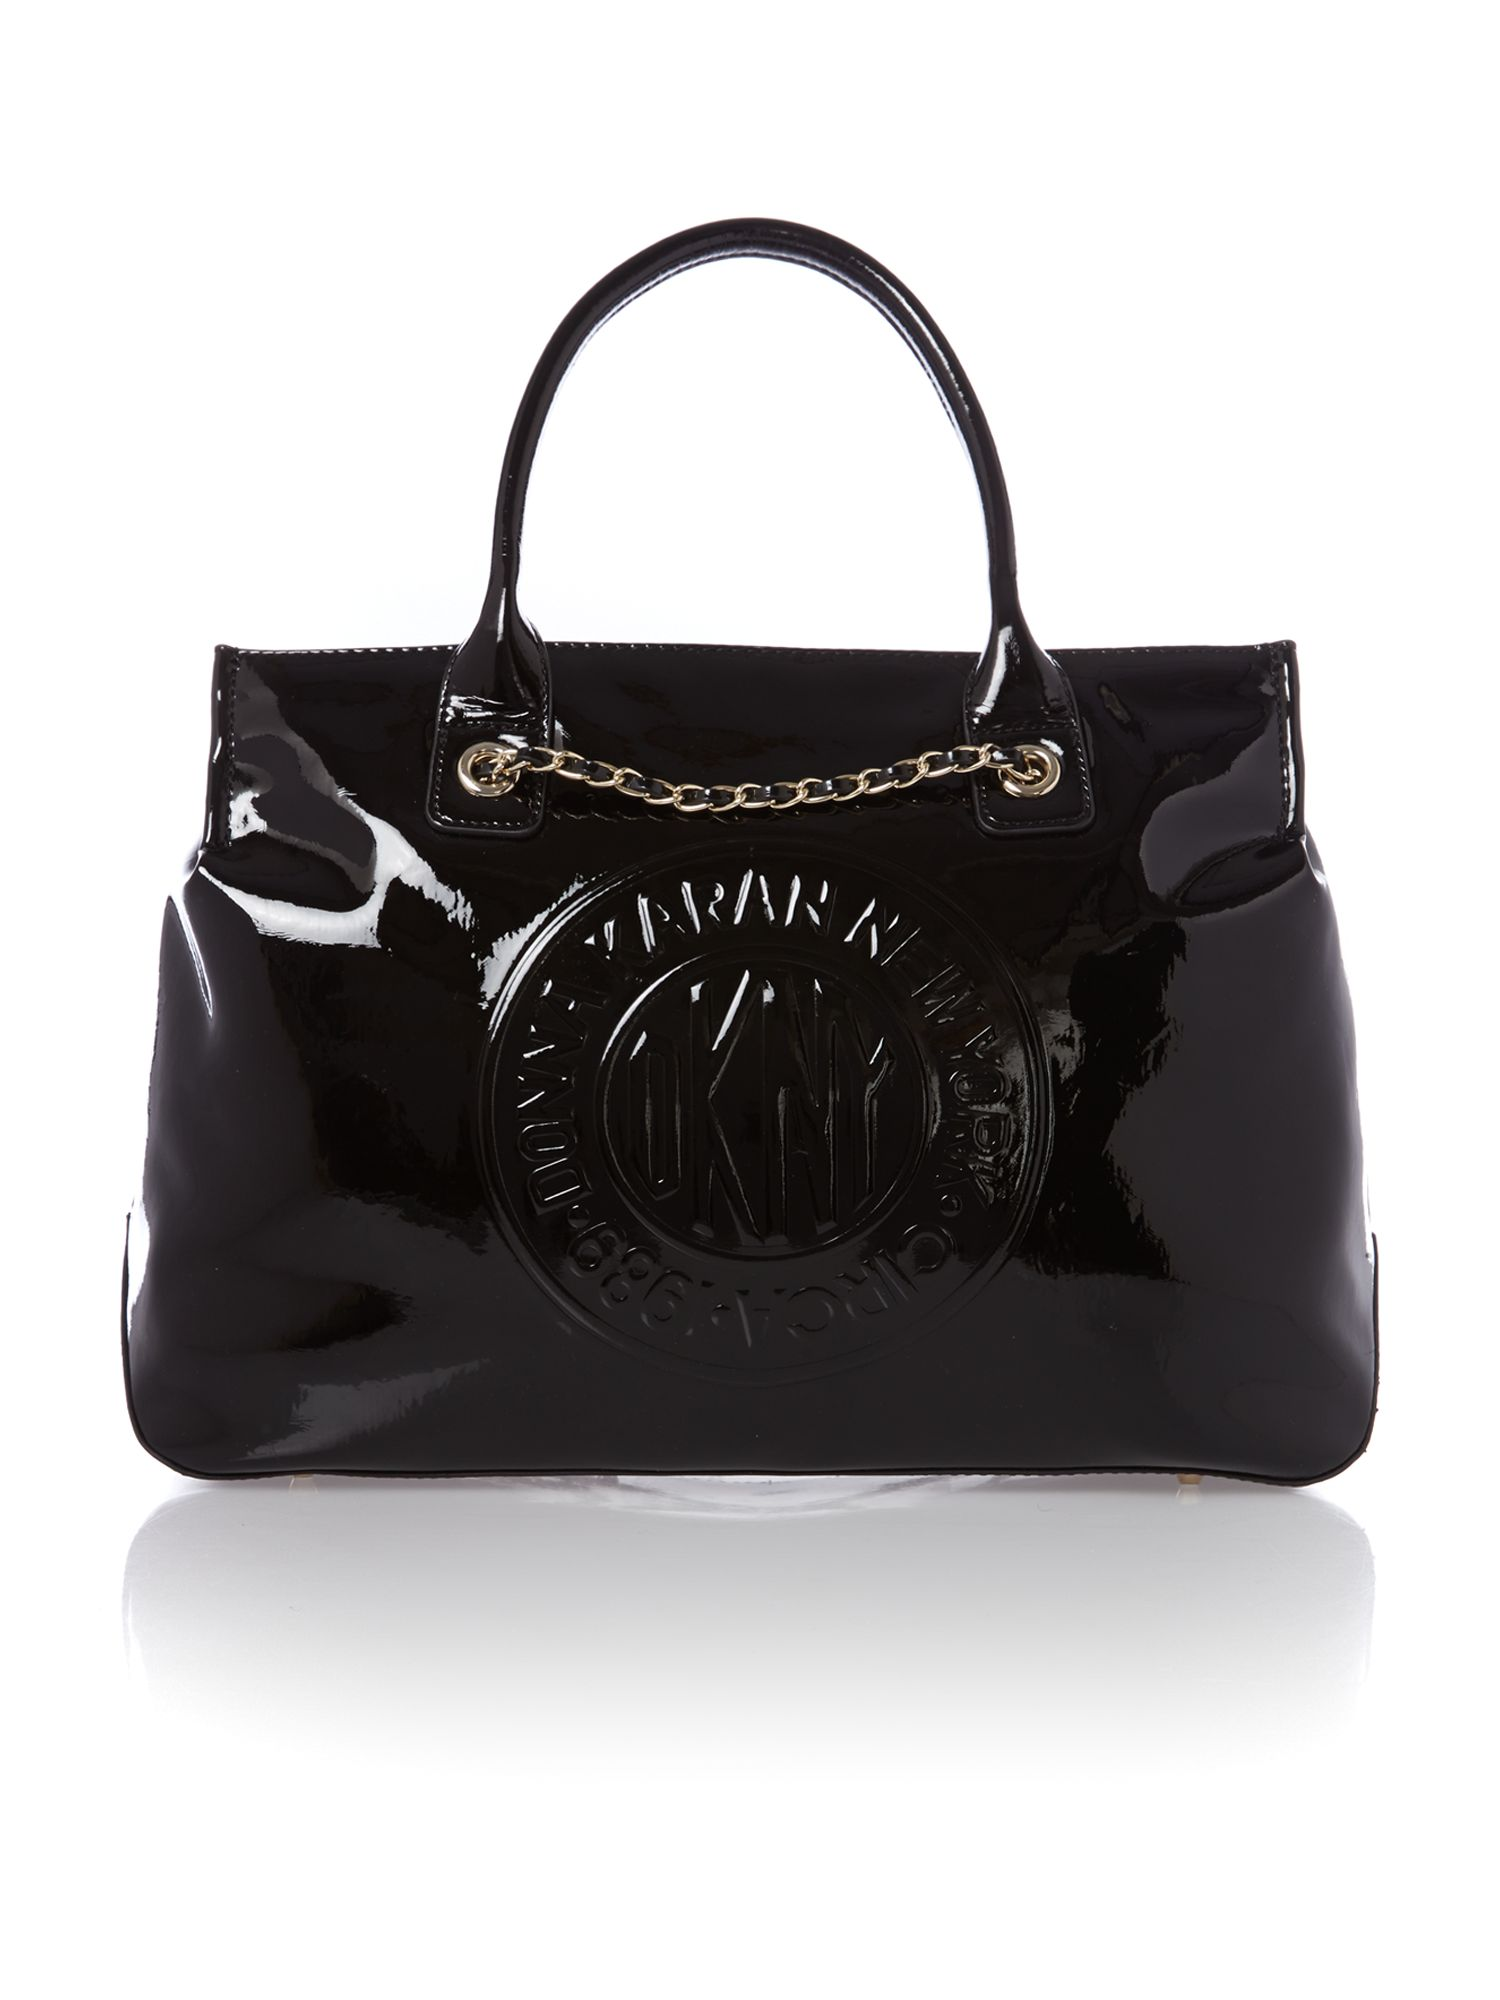 Patent black tote bag